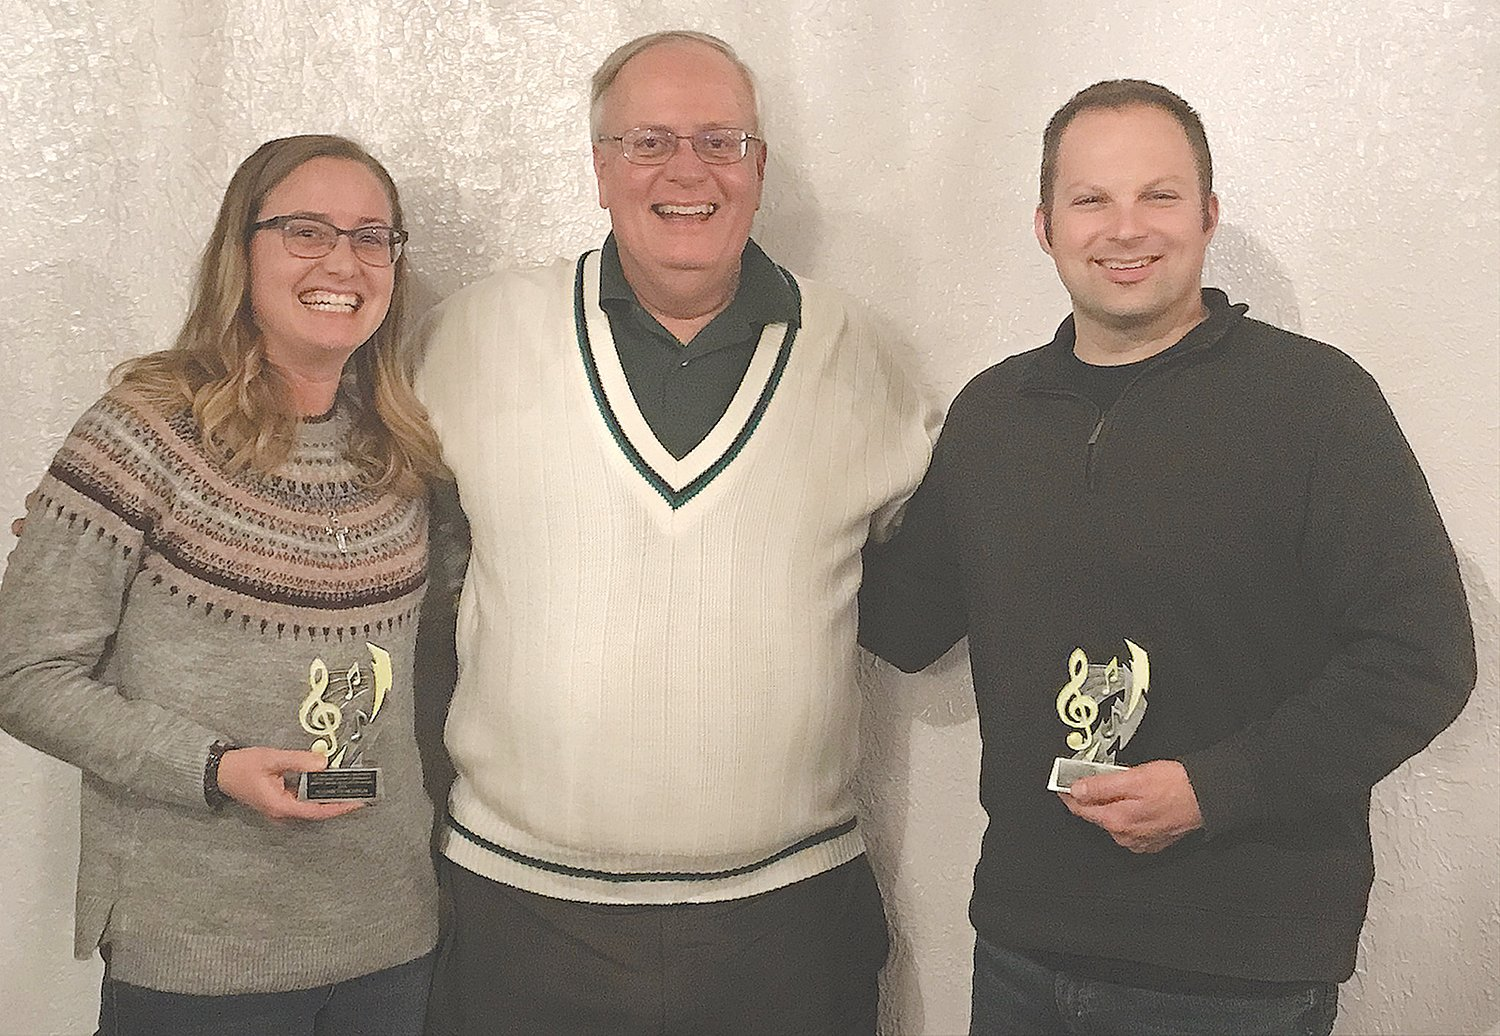 Elizabeth Newnum, left, and Andrew Simpkins, right, pose with Mark Eutsler after being honored with the 2019 Moffit Music Education Award.